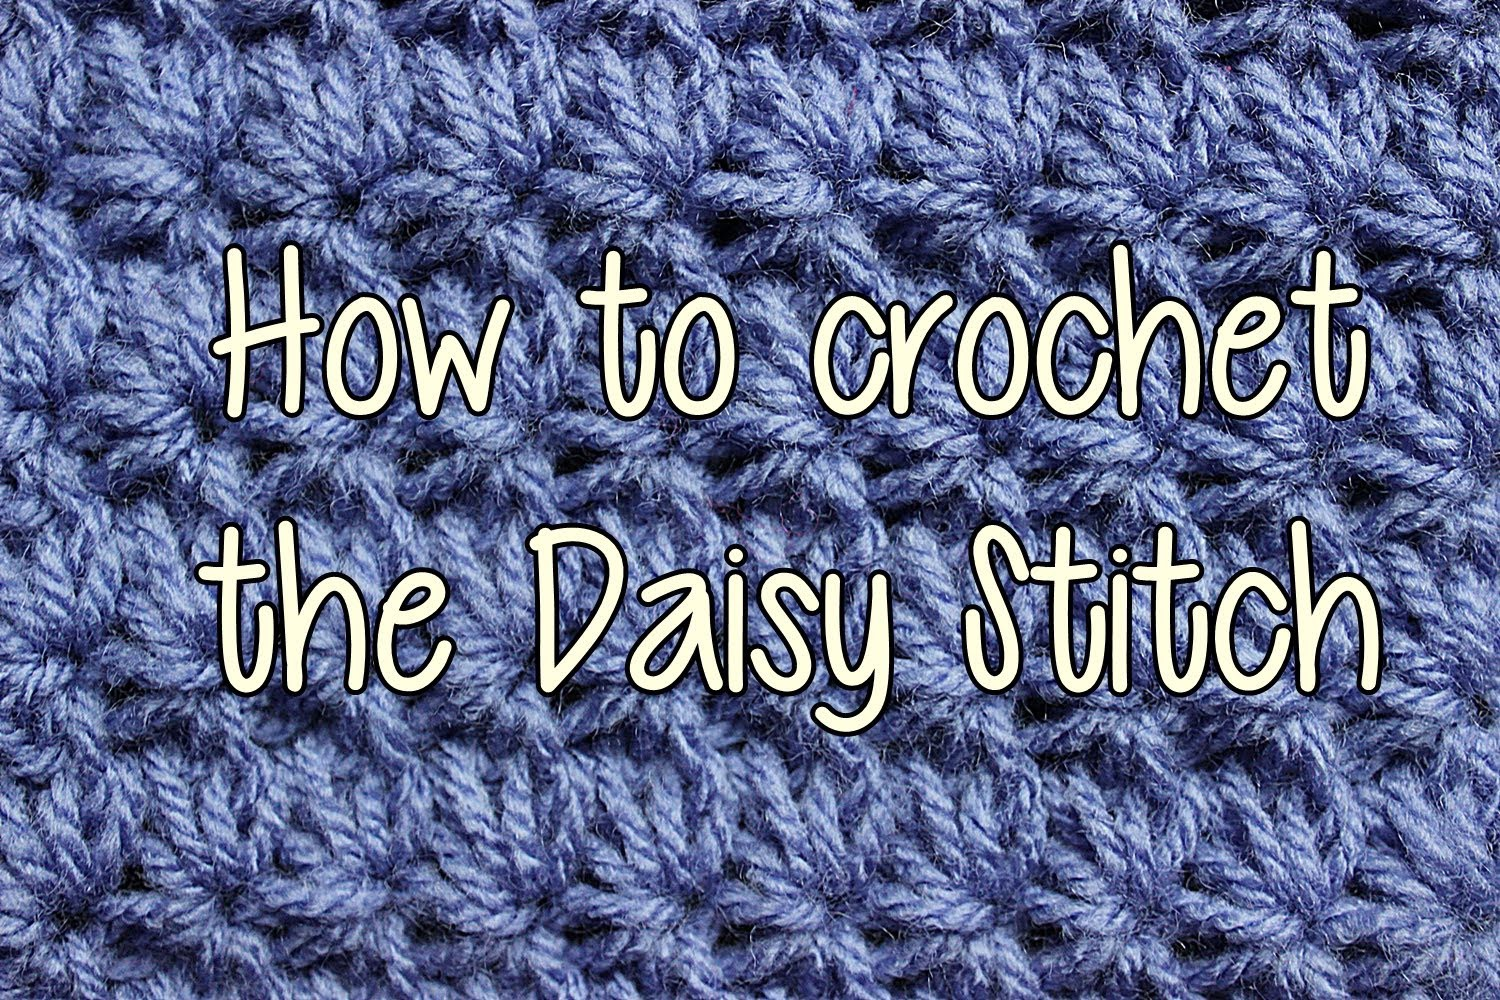 How to Crochet the Daisy Stitch - Crochet Lessons